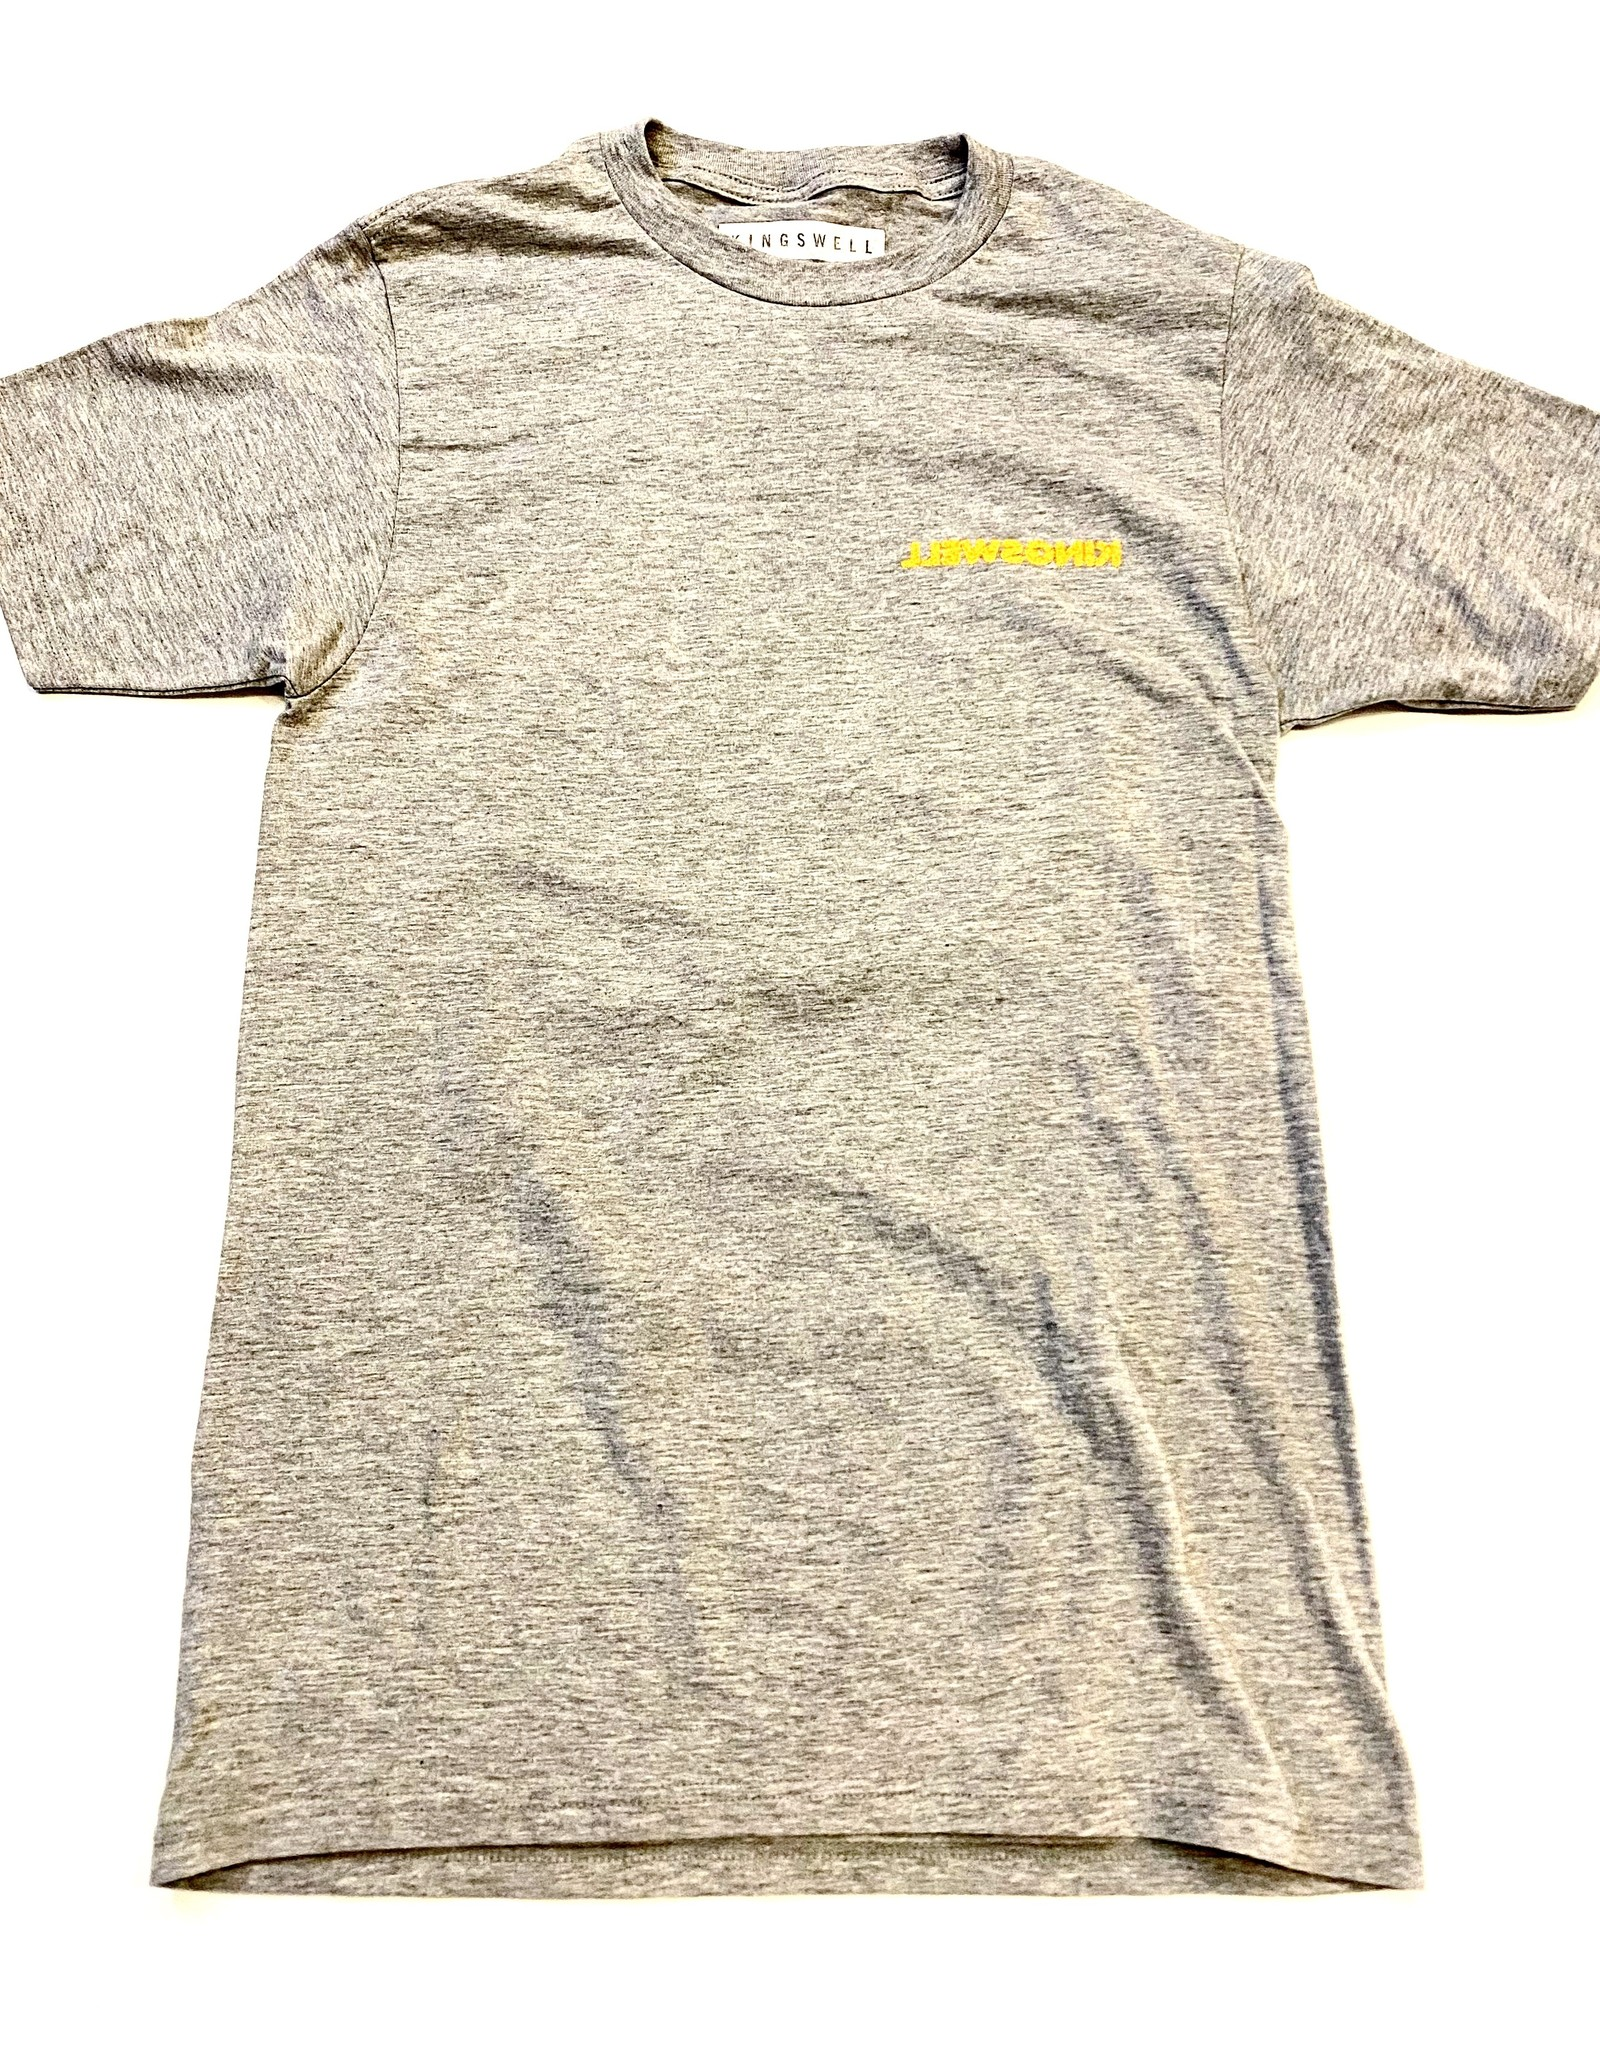 KINGSWELL KINGSWELL MOUSE RIPPER TEE - GREY